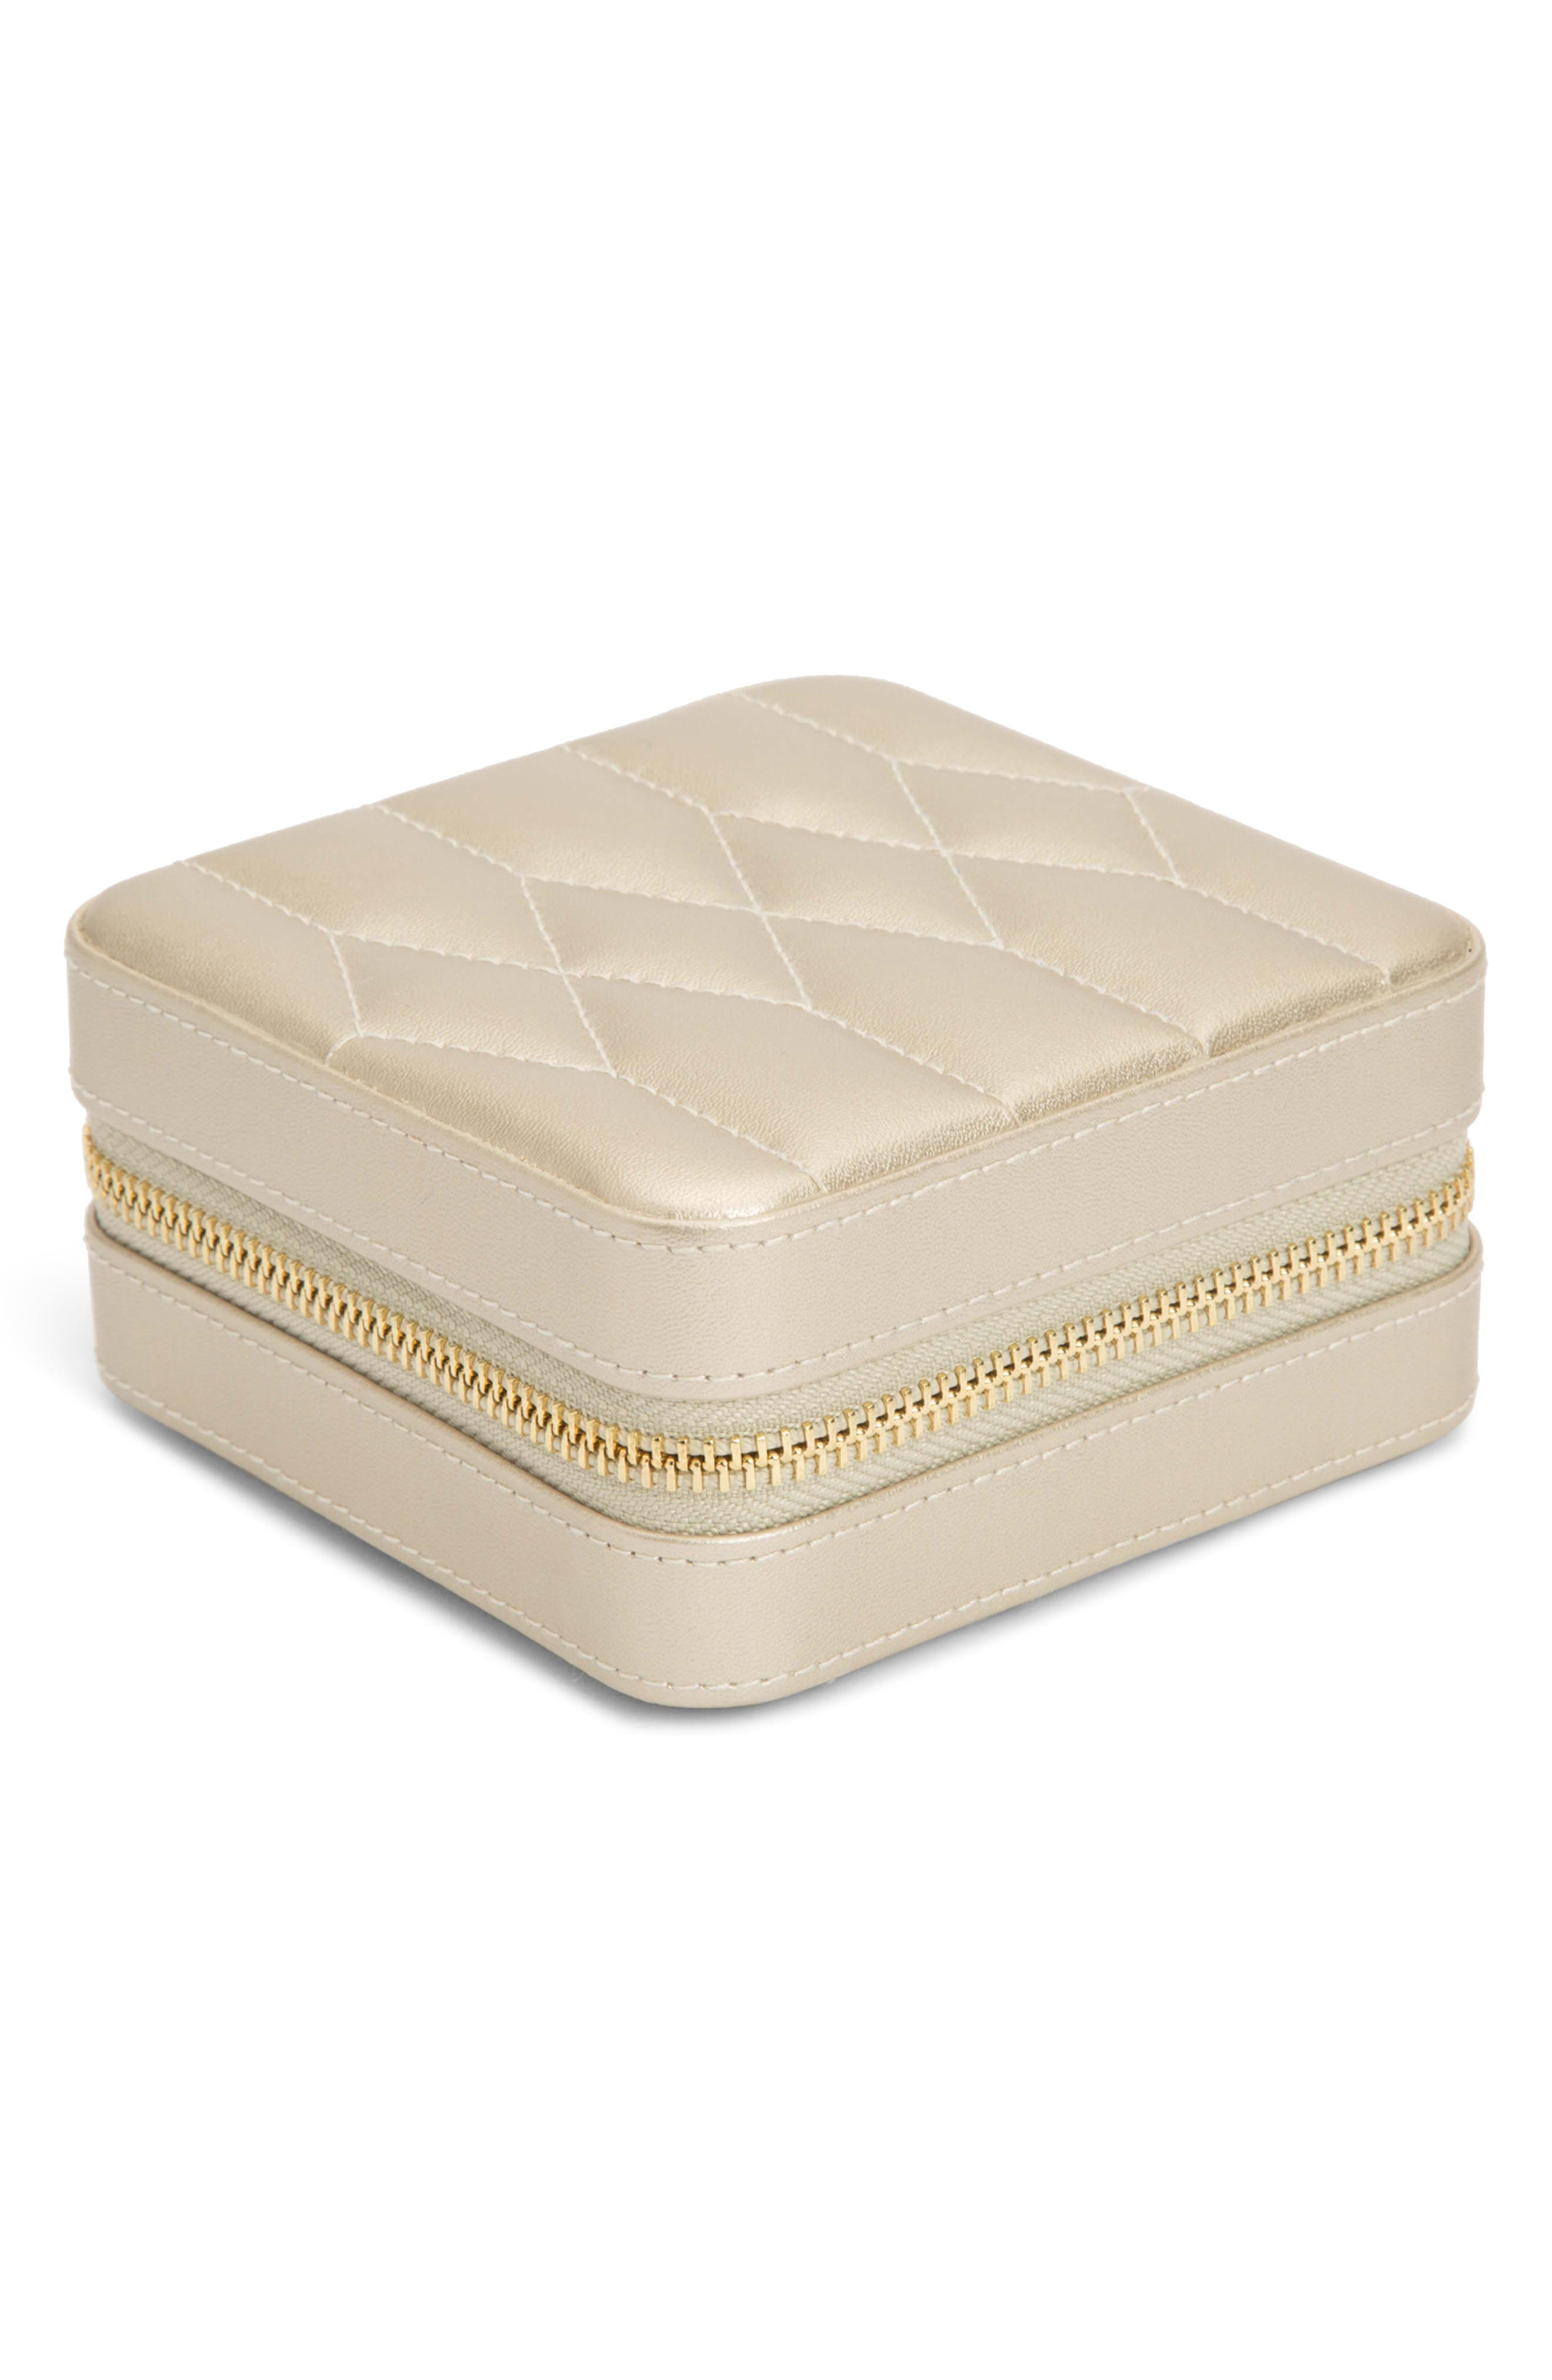 WOLF 'Caroline' Travel Jewelry Case, Main, color, CHAMPAGNE